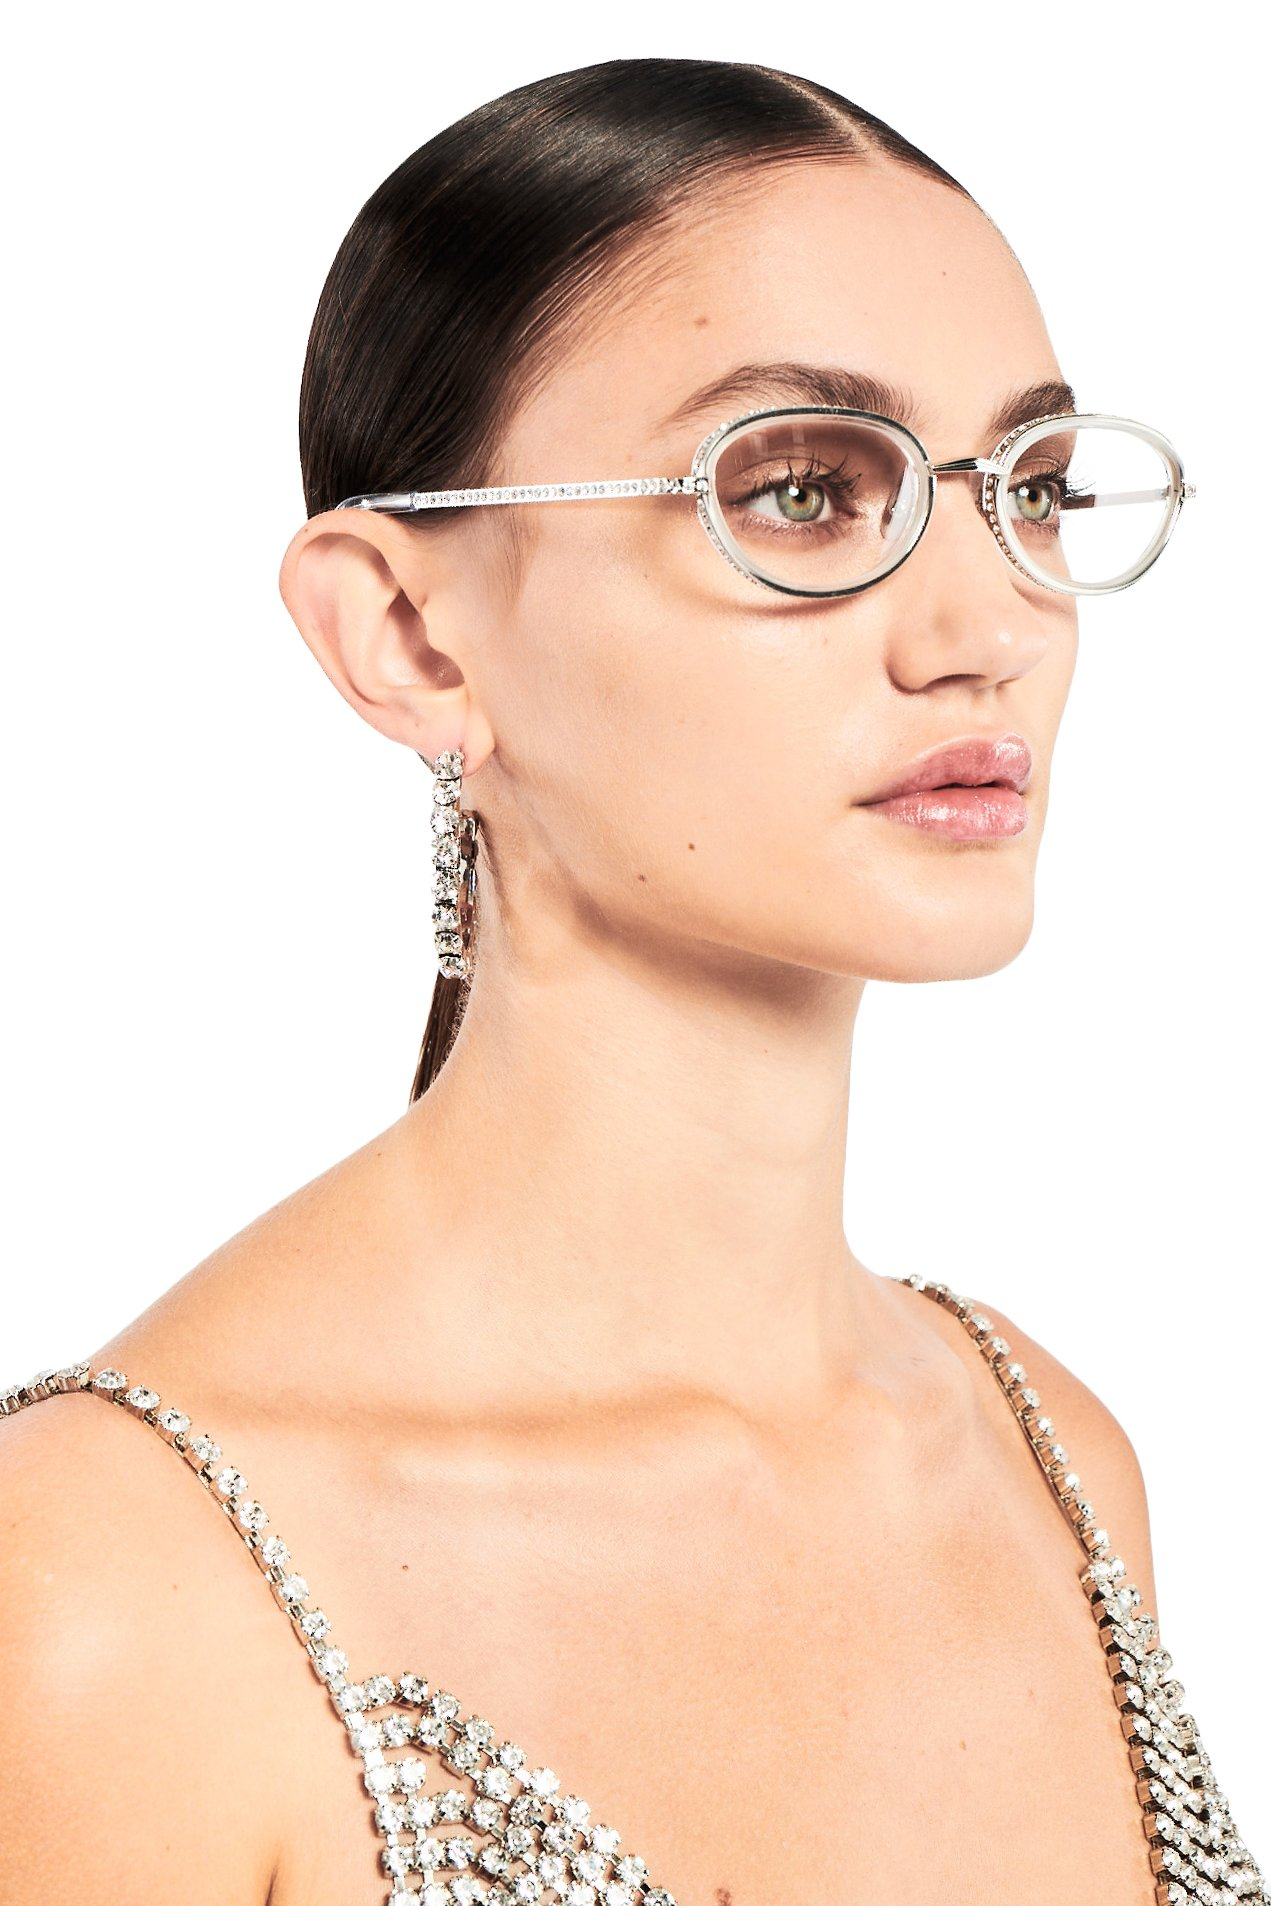 AREA x Linda Farrow Glasses